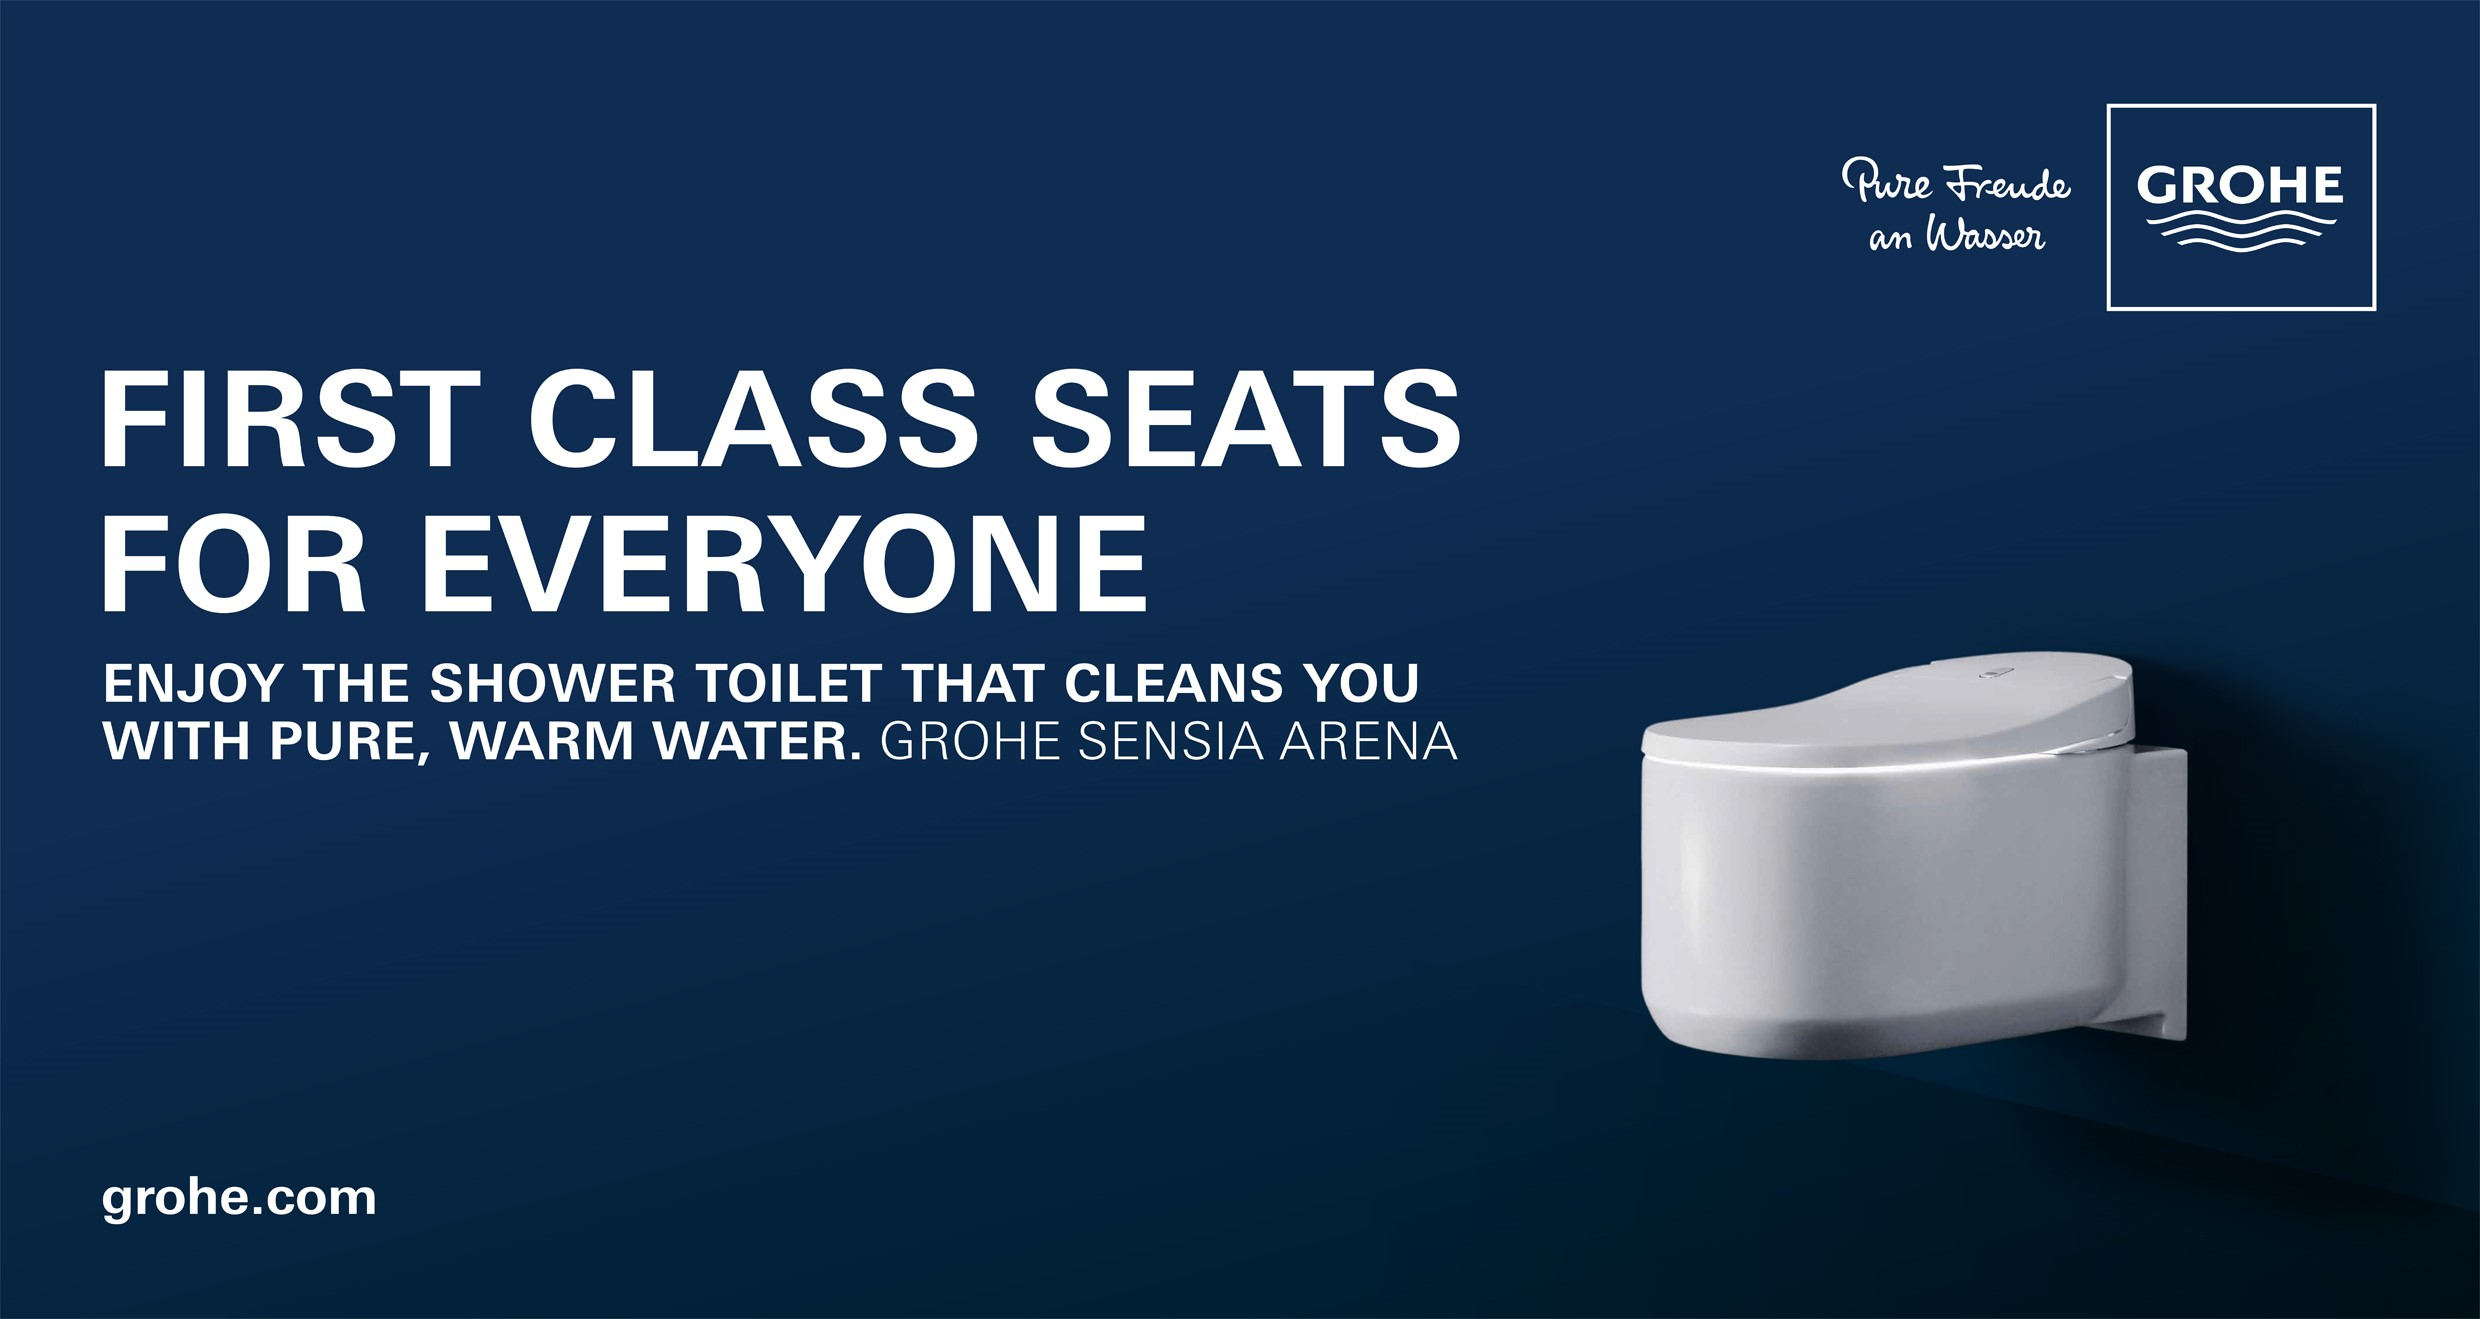 Grohe launches shower toilet campaign at international airports ...